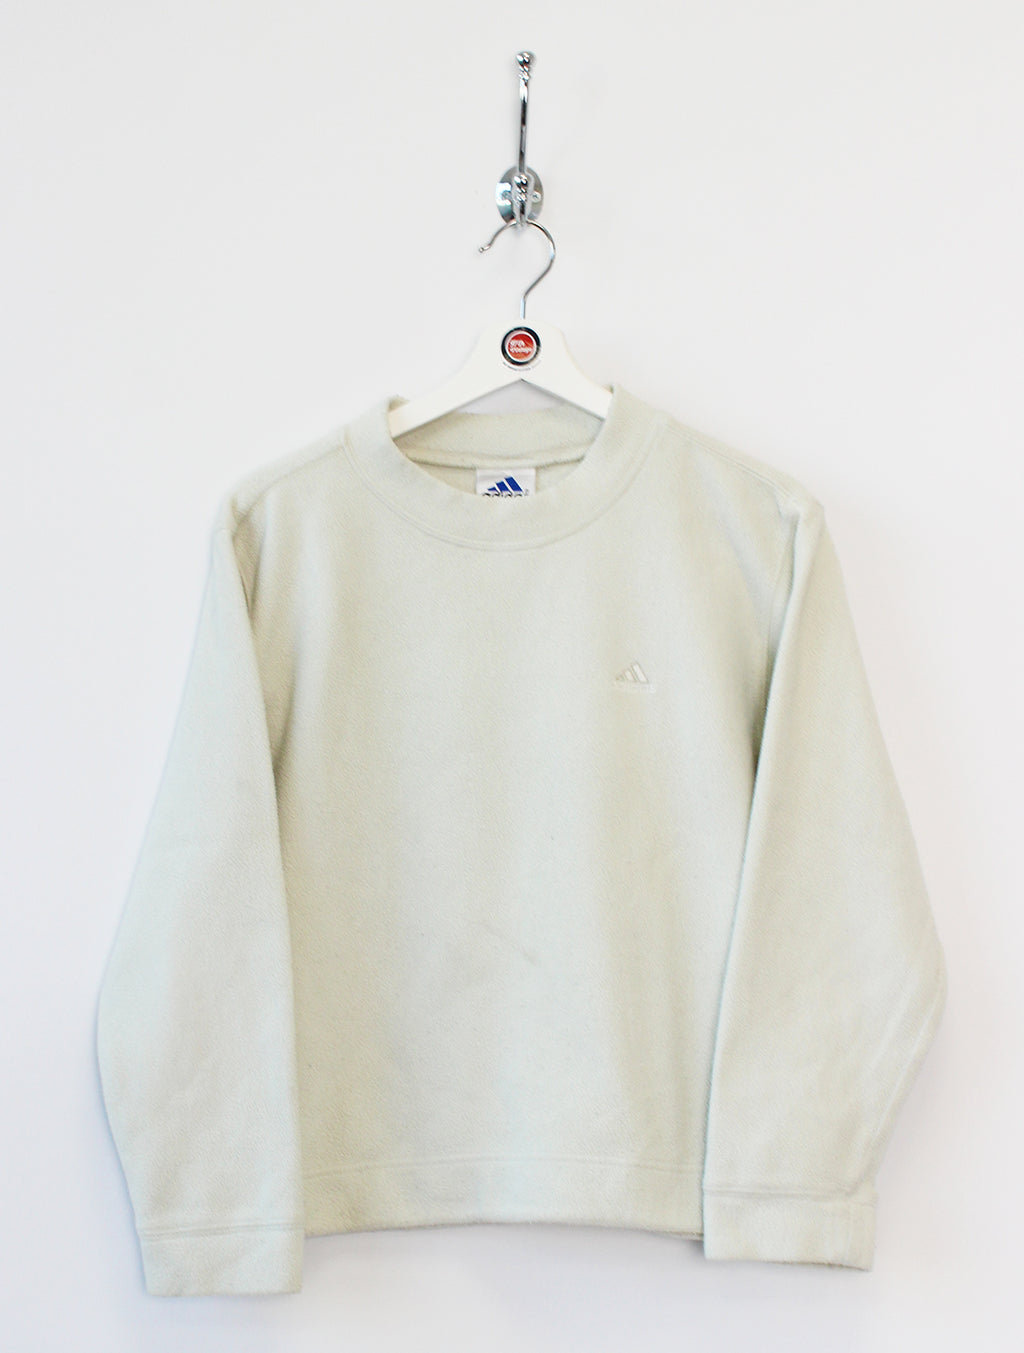 Women's Adidas Fleece Crewneck (S)